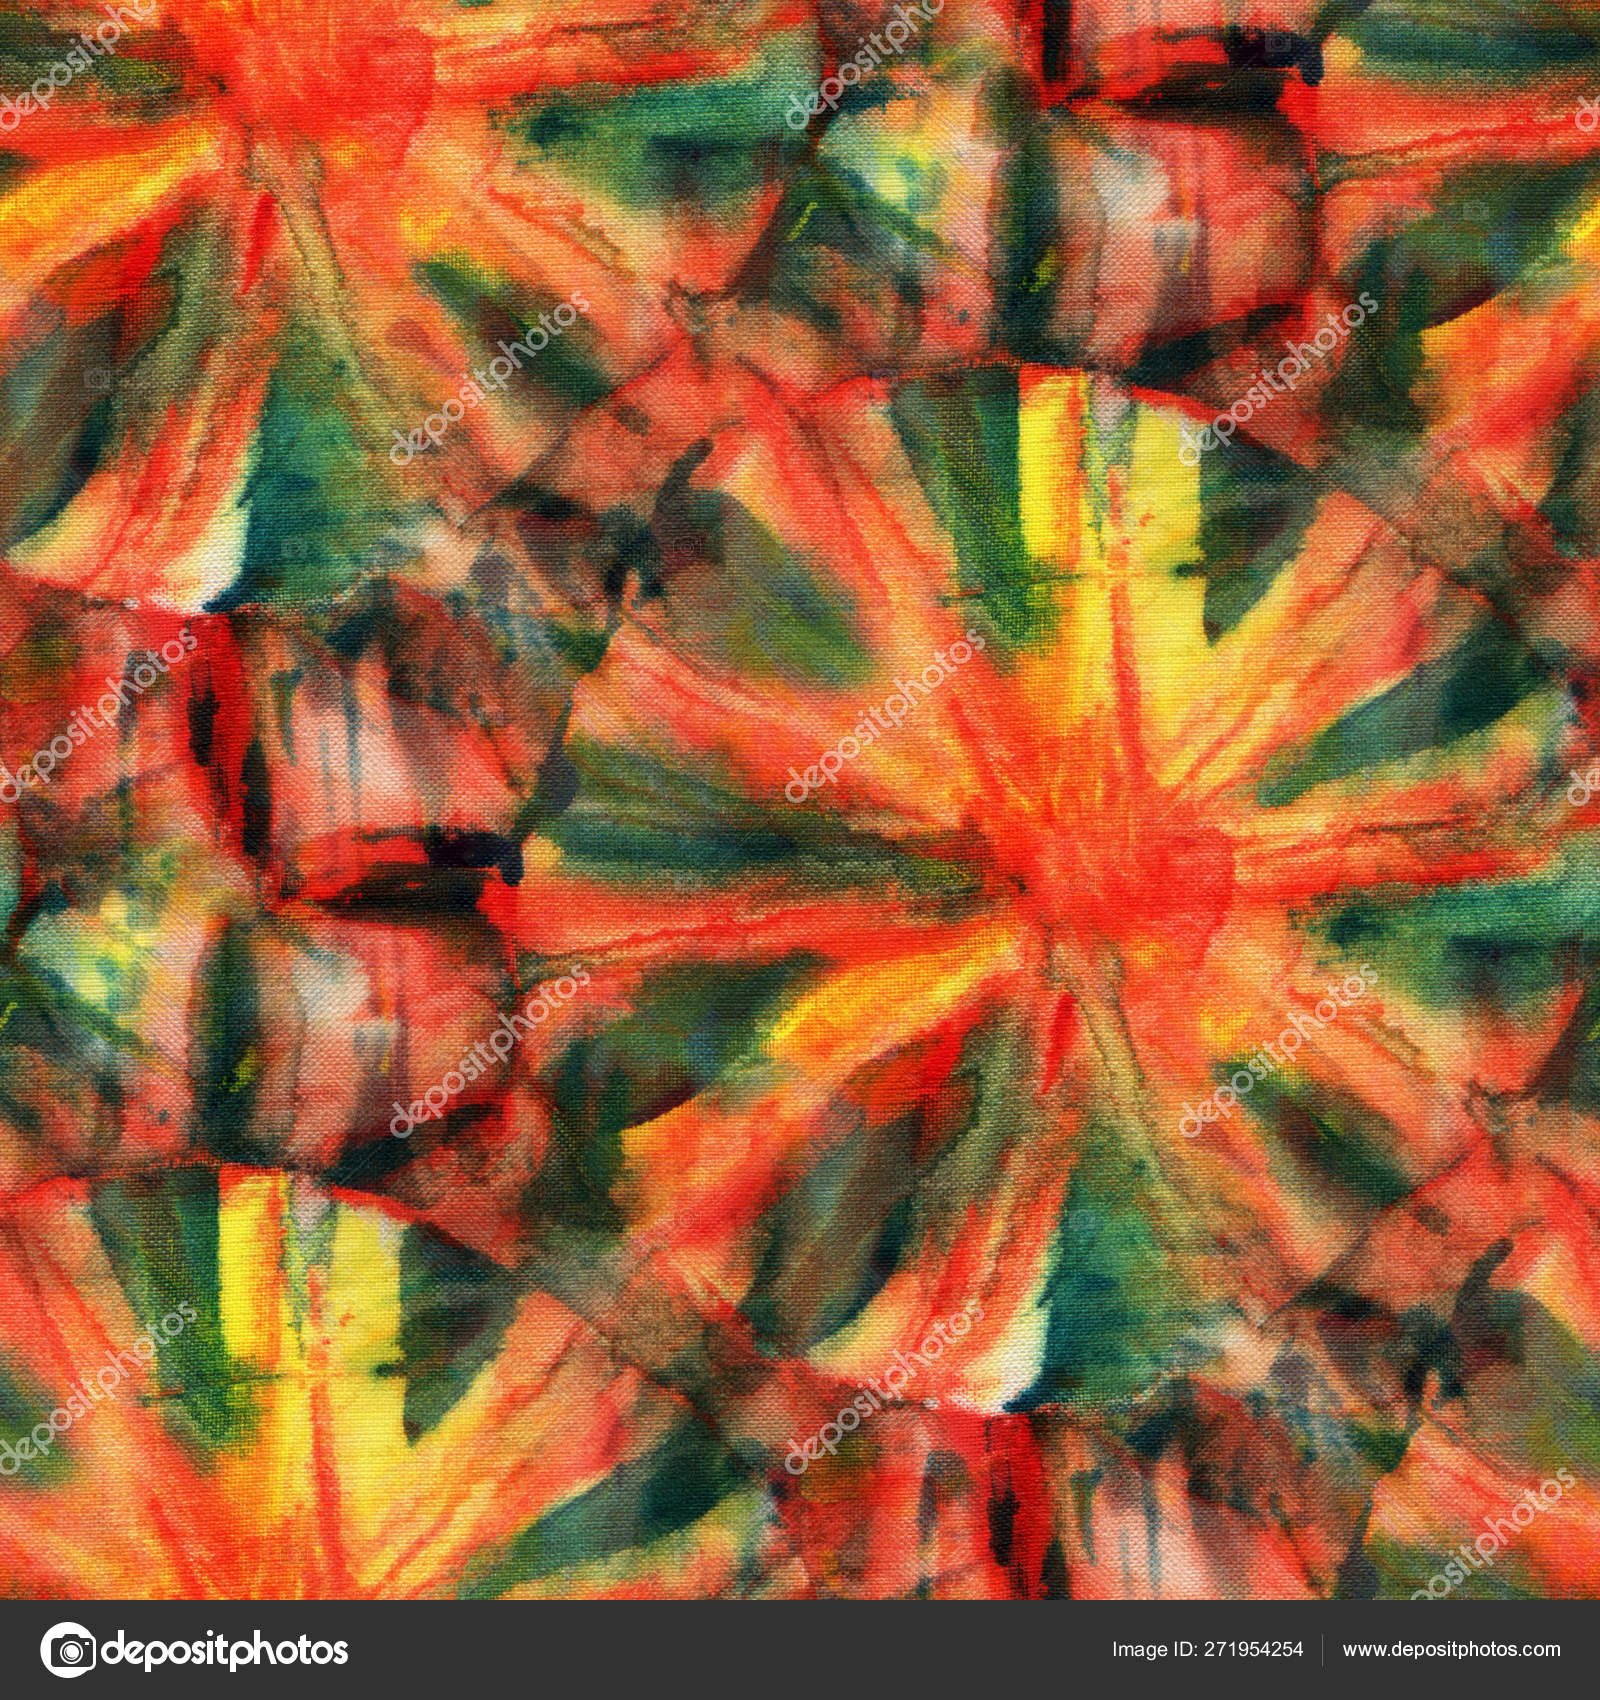 7231f5452458 Seamless tie-dye pattern of red and green color on white silk. Hand  painting fabrics - nodular batik. Shibori dyeing.